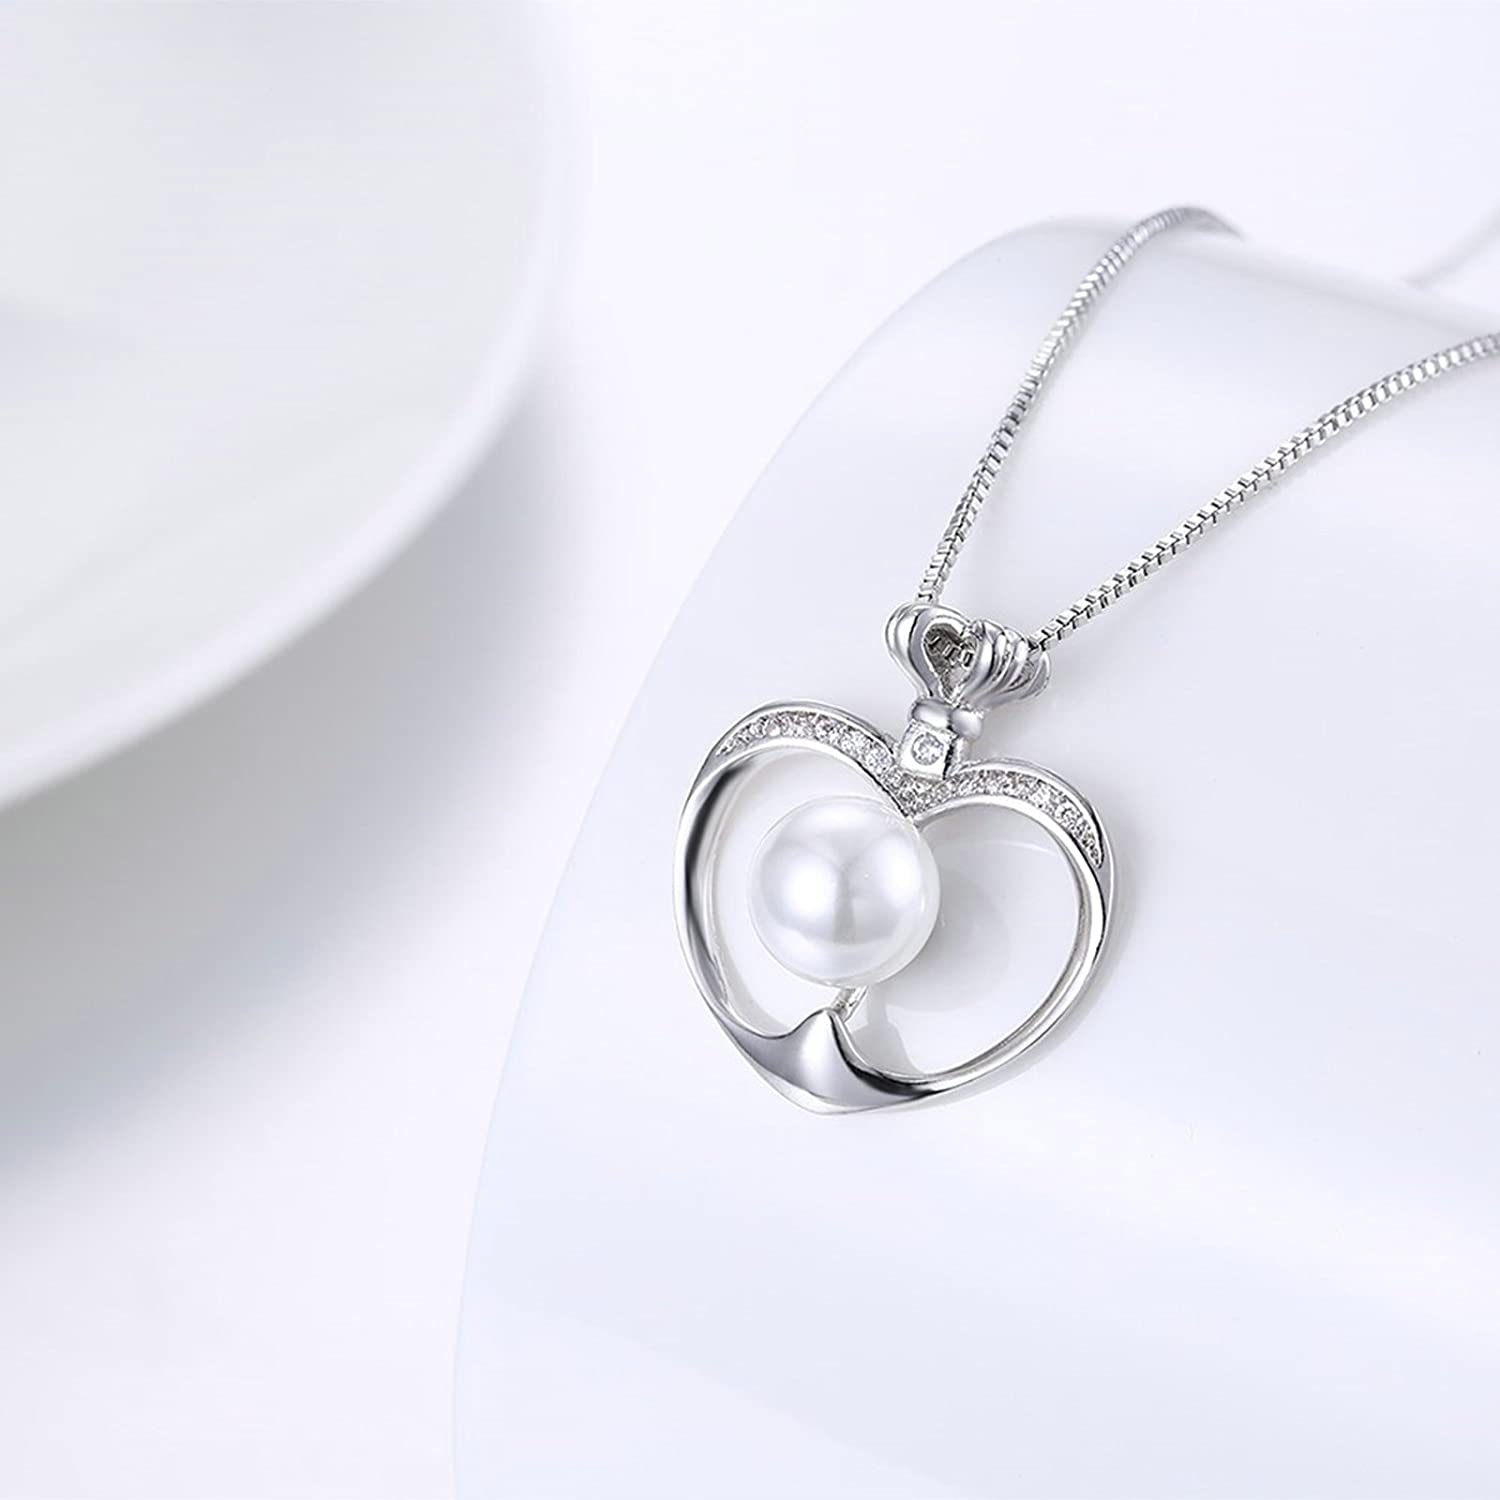 45+5CM KnSam Necklace for Women Heart Embedded Pearl White Chain Length